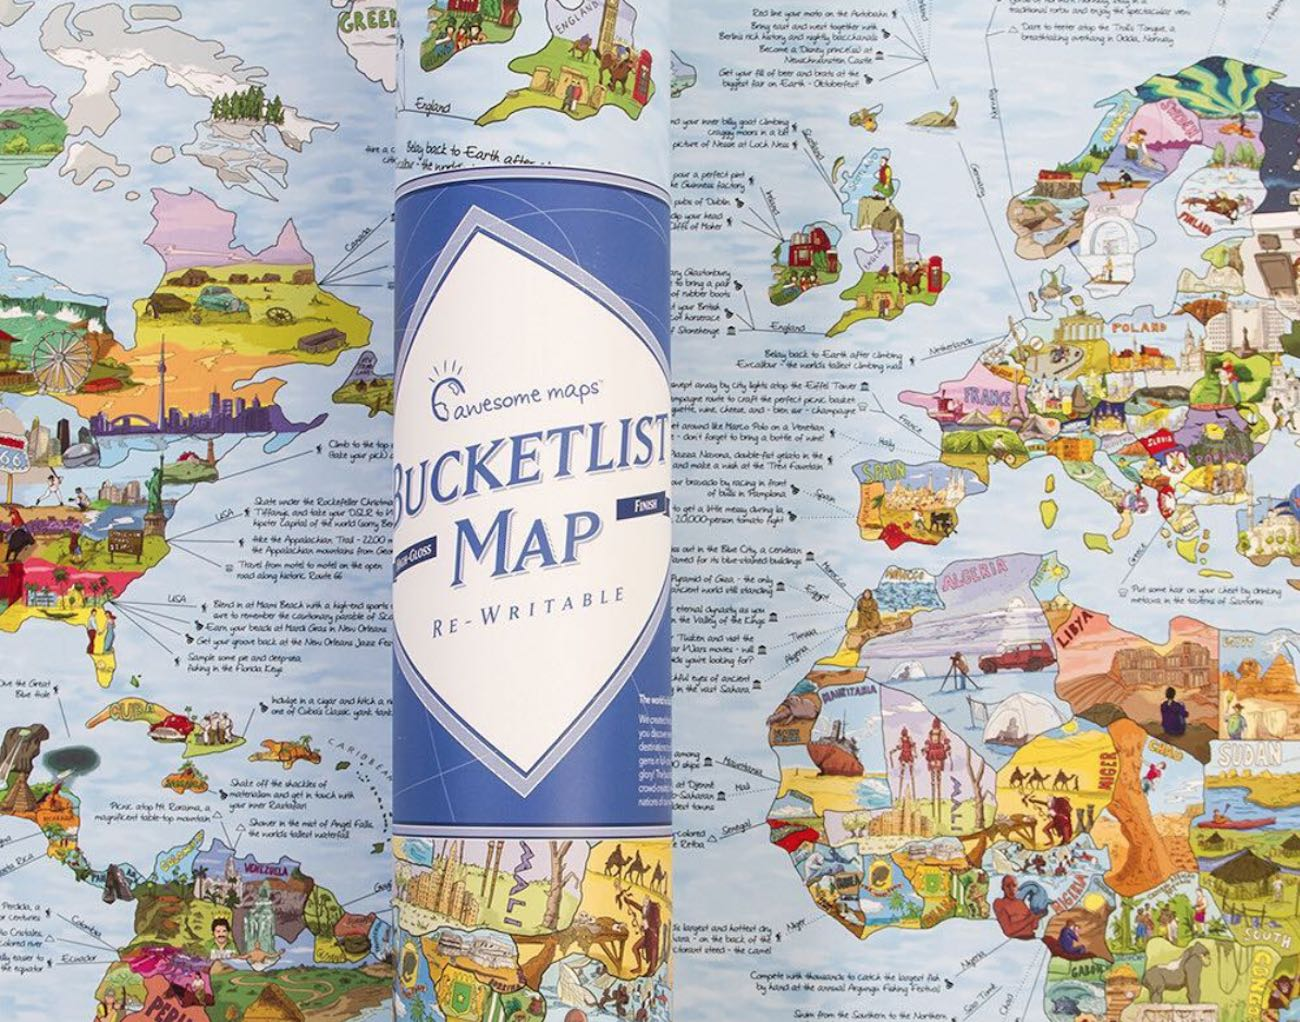 Rand mcnally classic world map around the world english version by bucketlist world map poster gumiabroncs Images